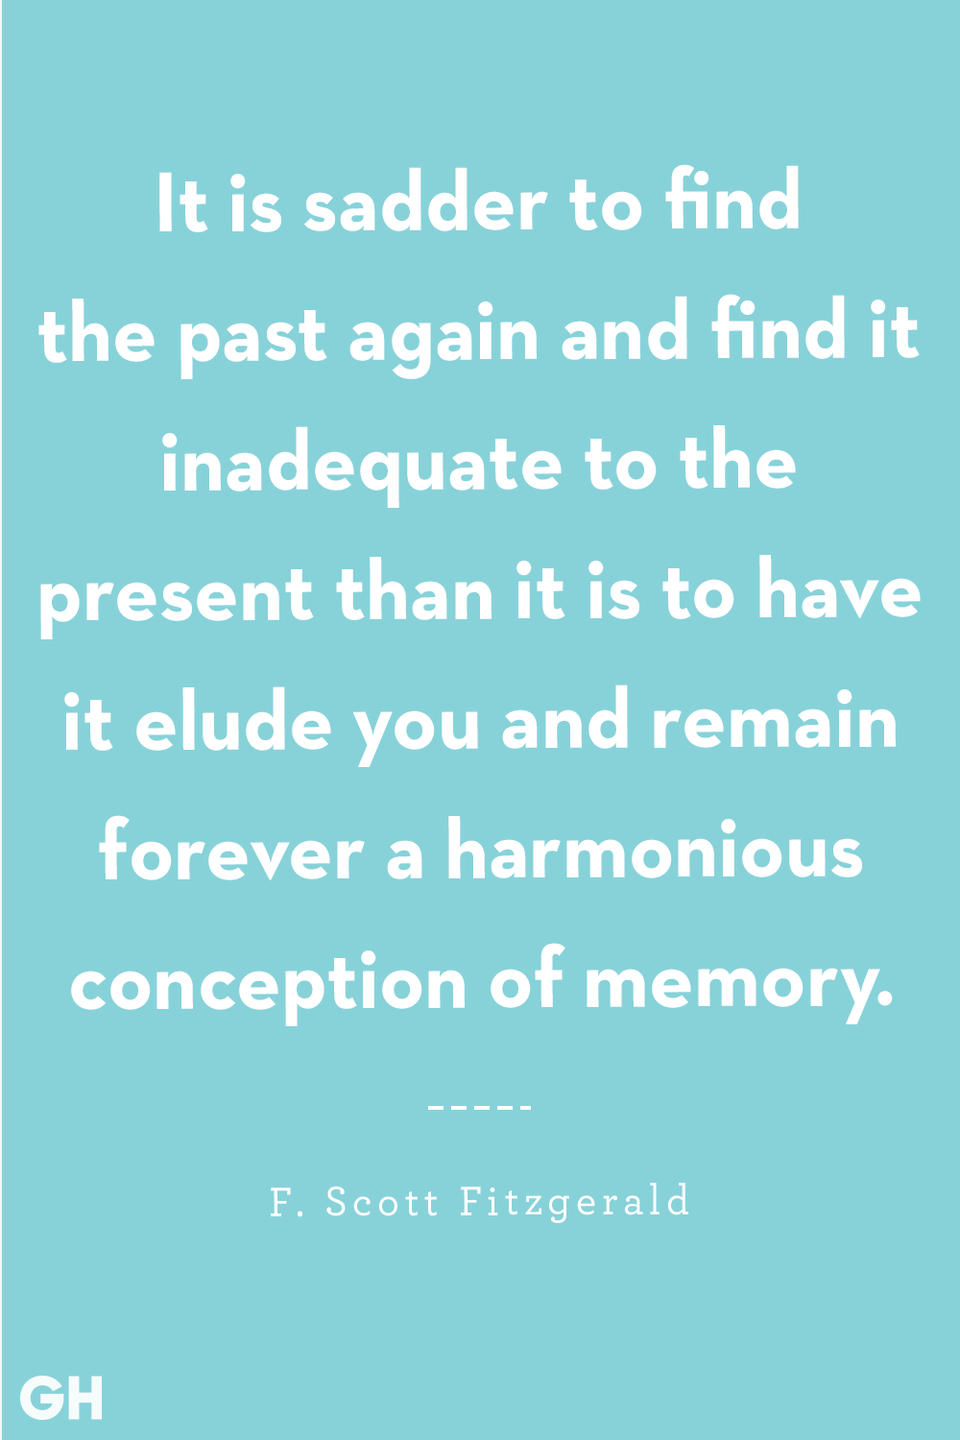 <p>It is sadder to find the past again and find it inadequate to the present than it is to have it elude you and remain forever a harmonious conception of memory.</p>